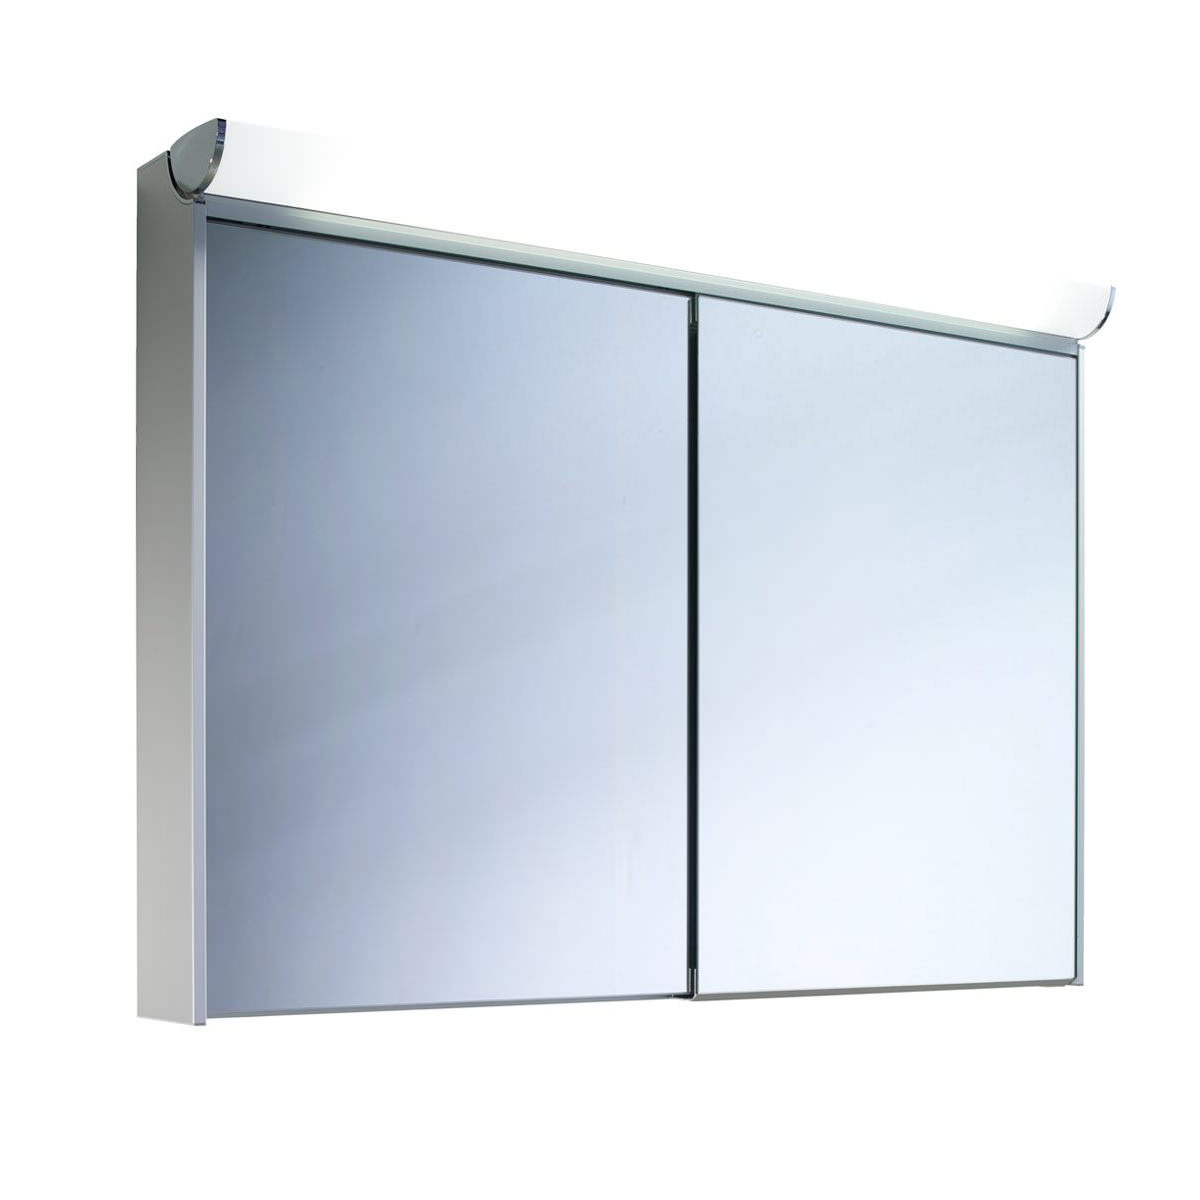 Schneider Slideline 1300mm Cabinet With 2 Sliding Mirror Doors